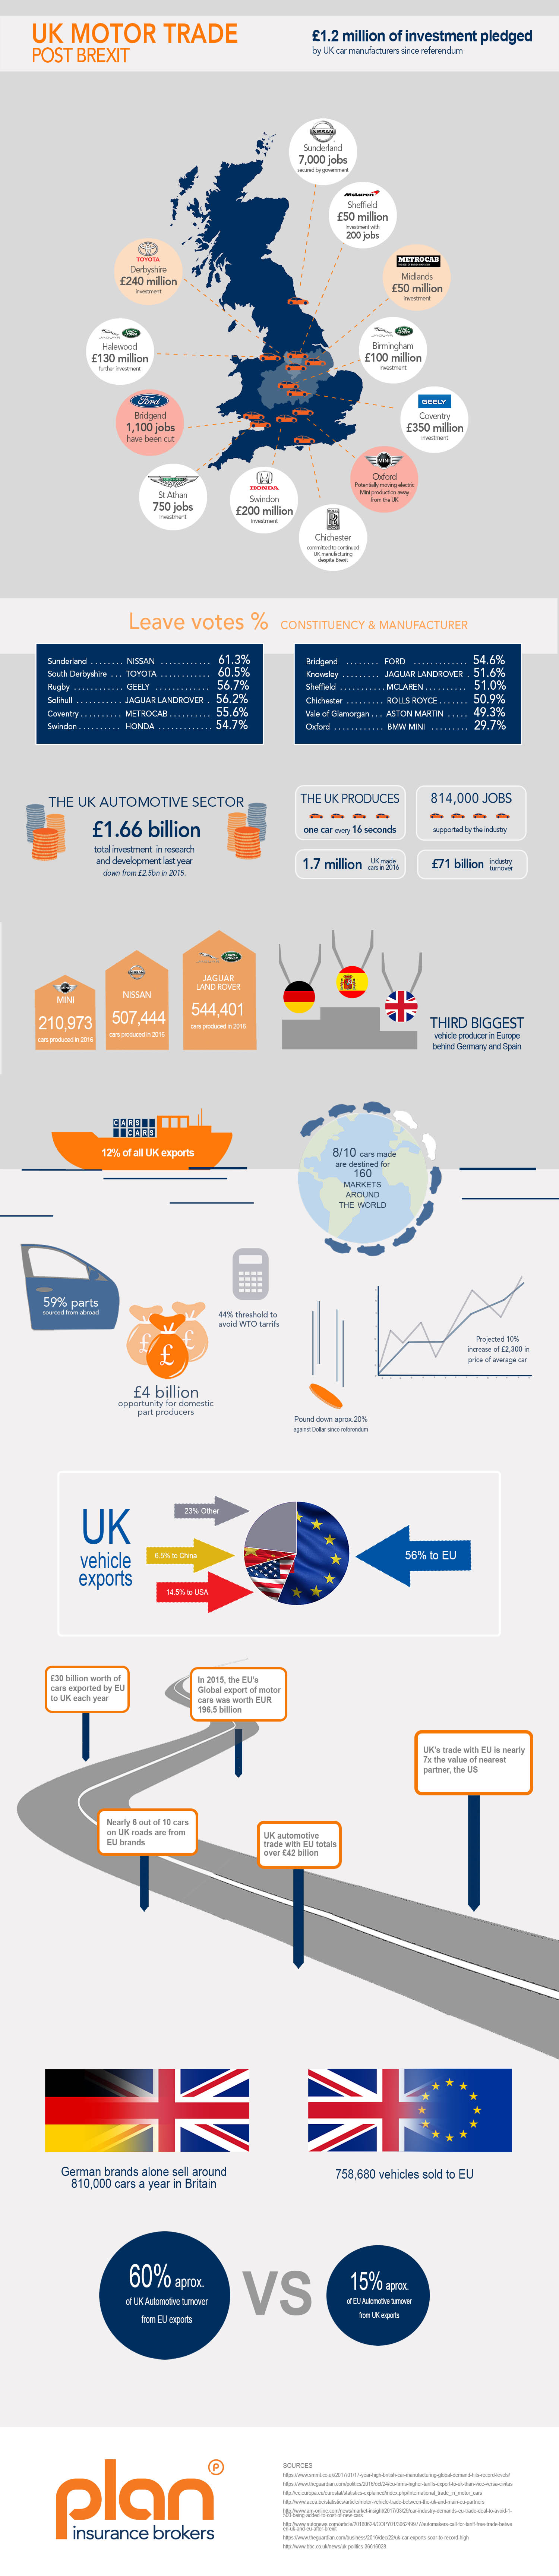 Motor-Trade-Investments-Brexit-and-Production IG